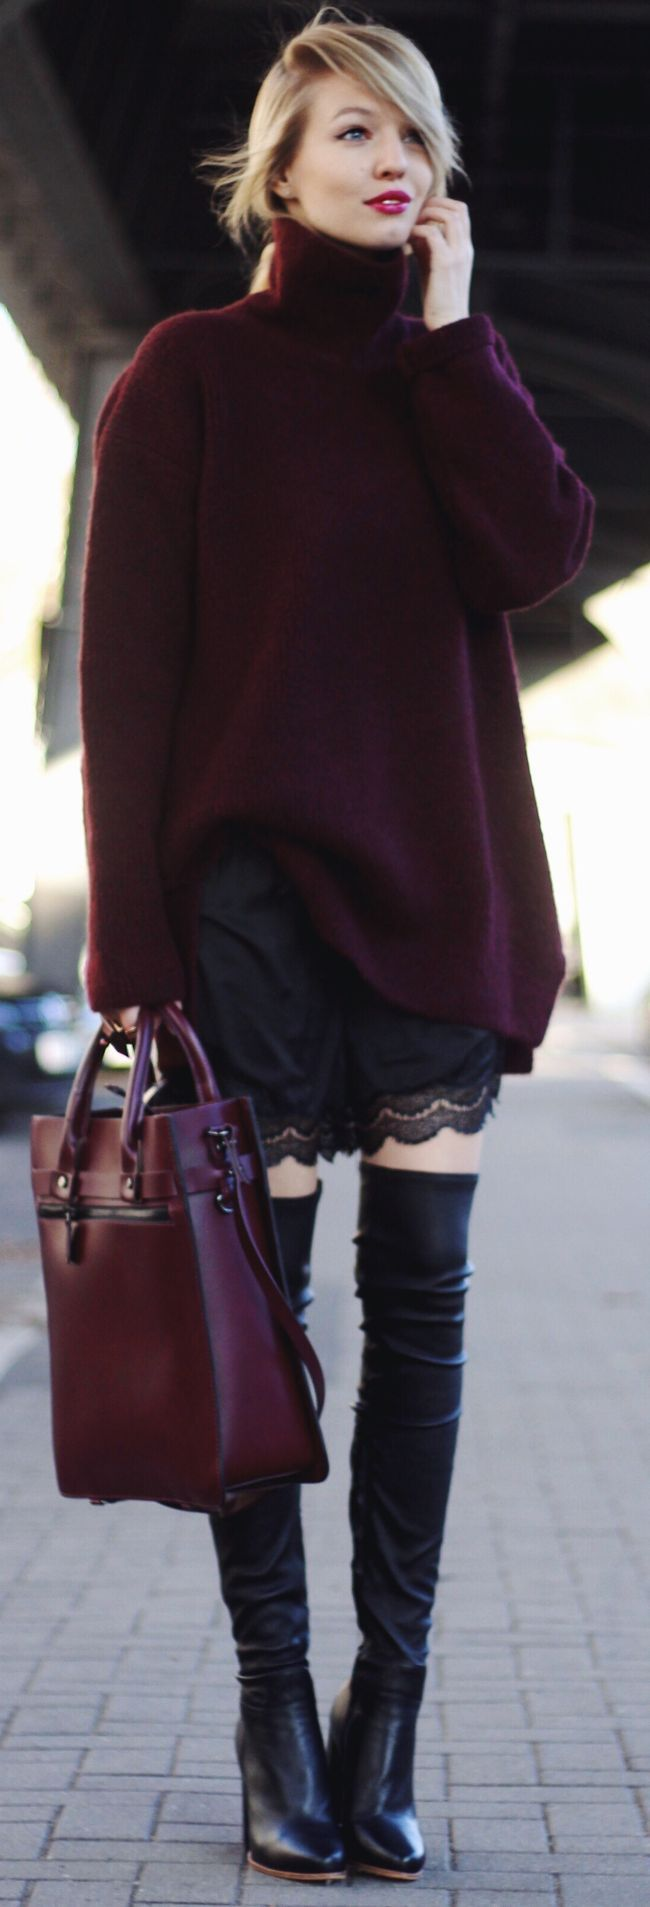 Oversized Bordeaux Sweater & bag. women fashion outfit clothing style apparel @roressclothes closet ideas